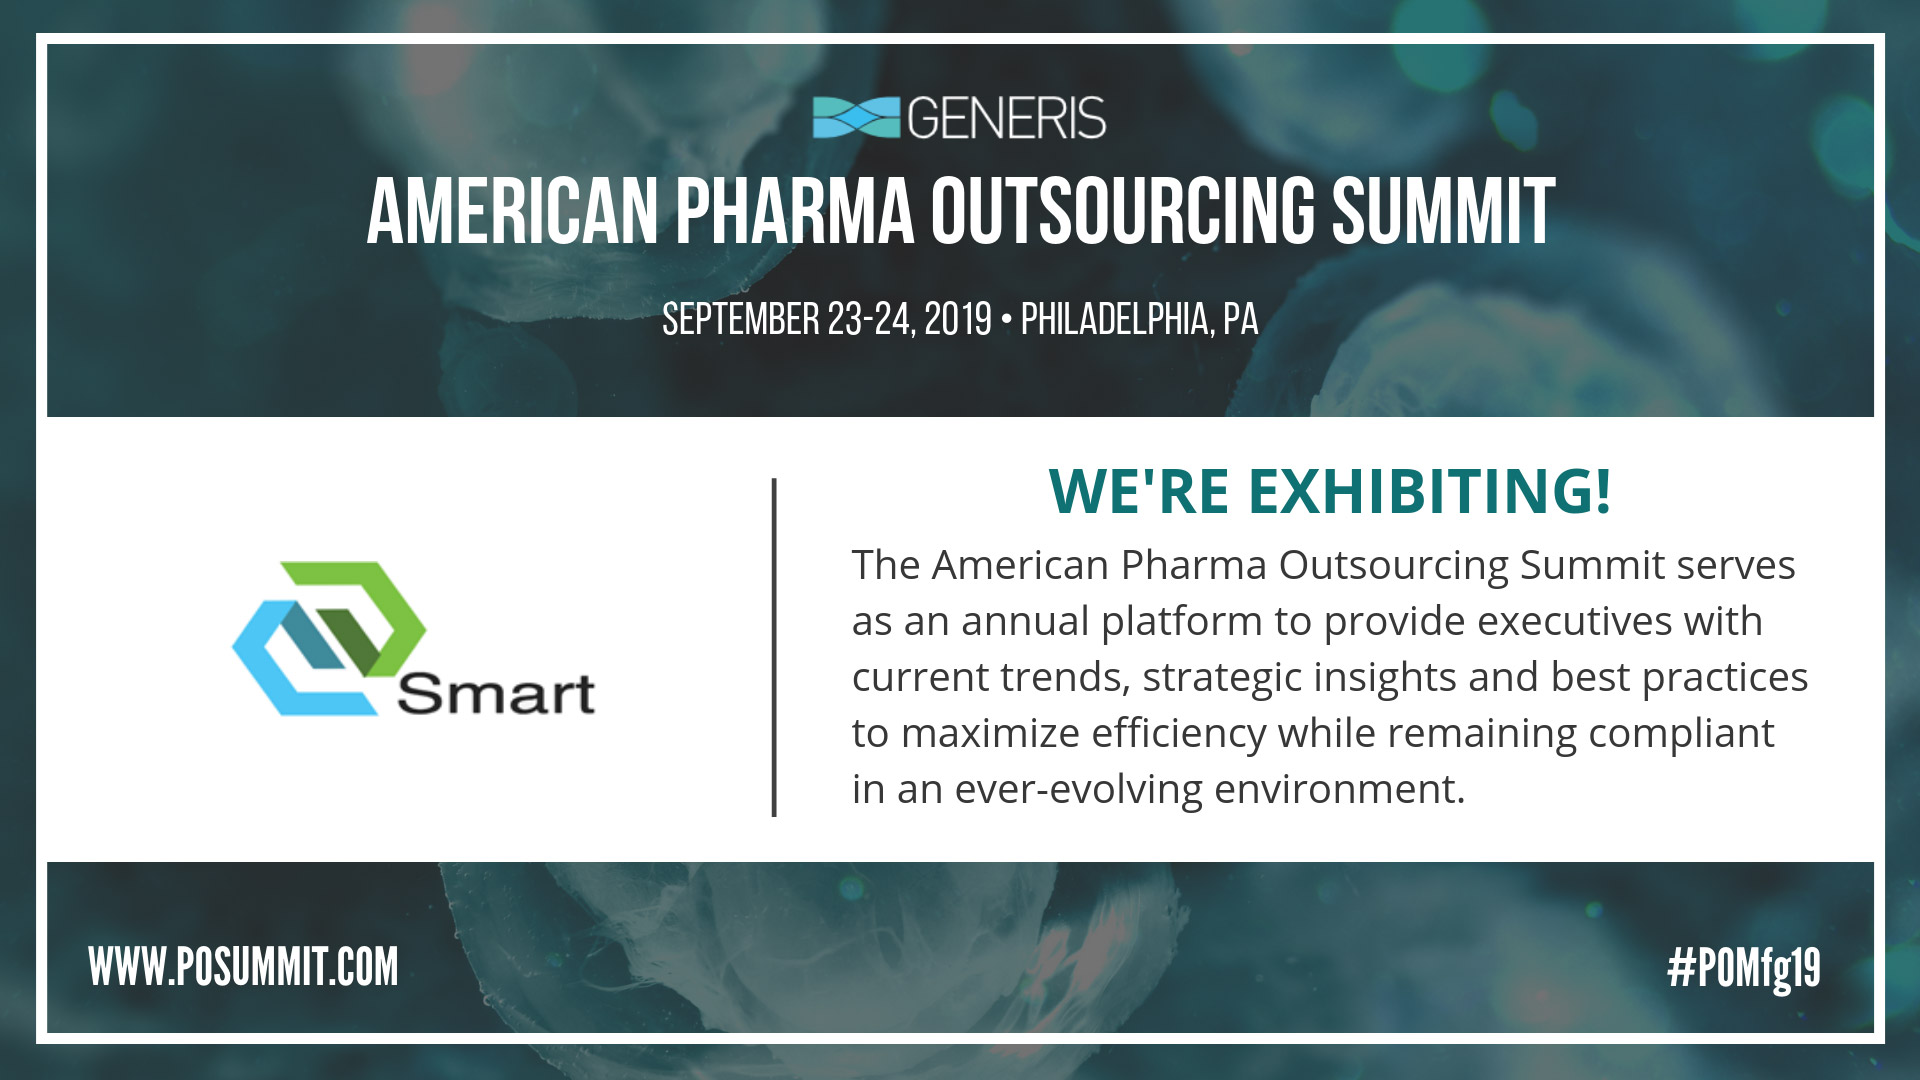 2019 American Pharma Outsourcing Summit